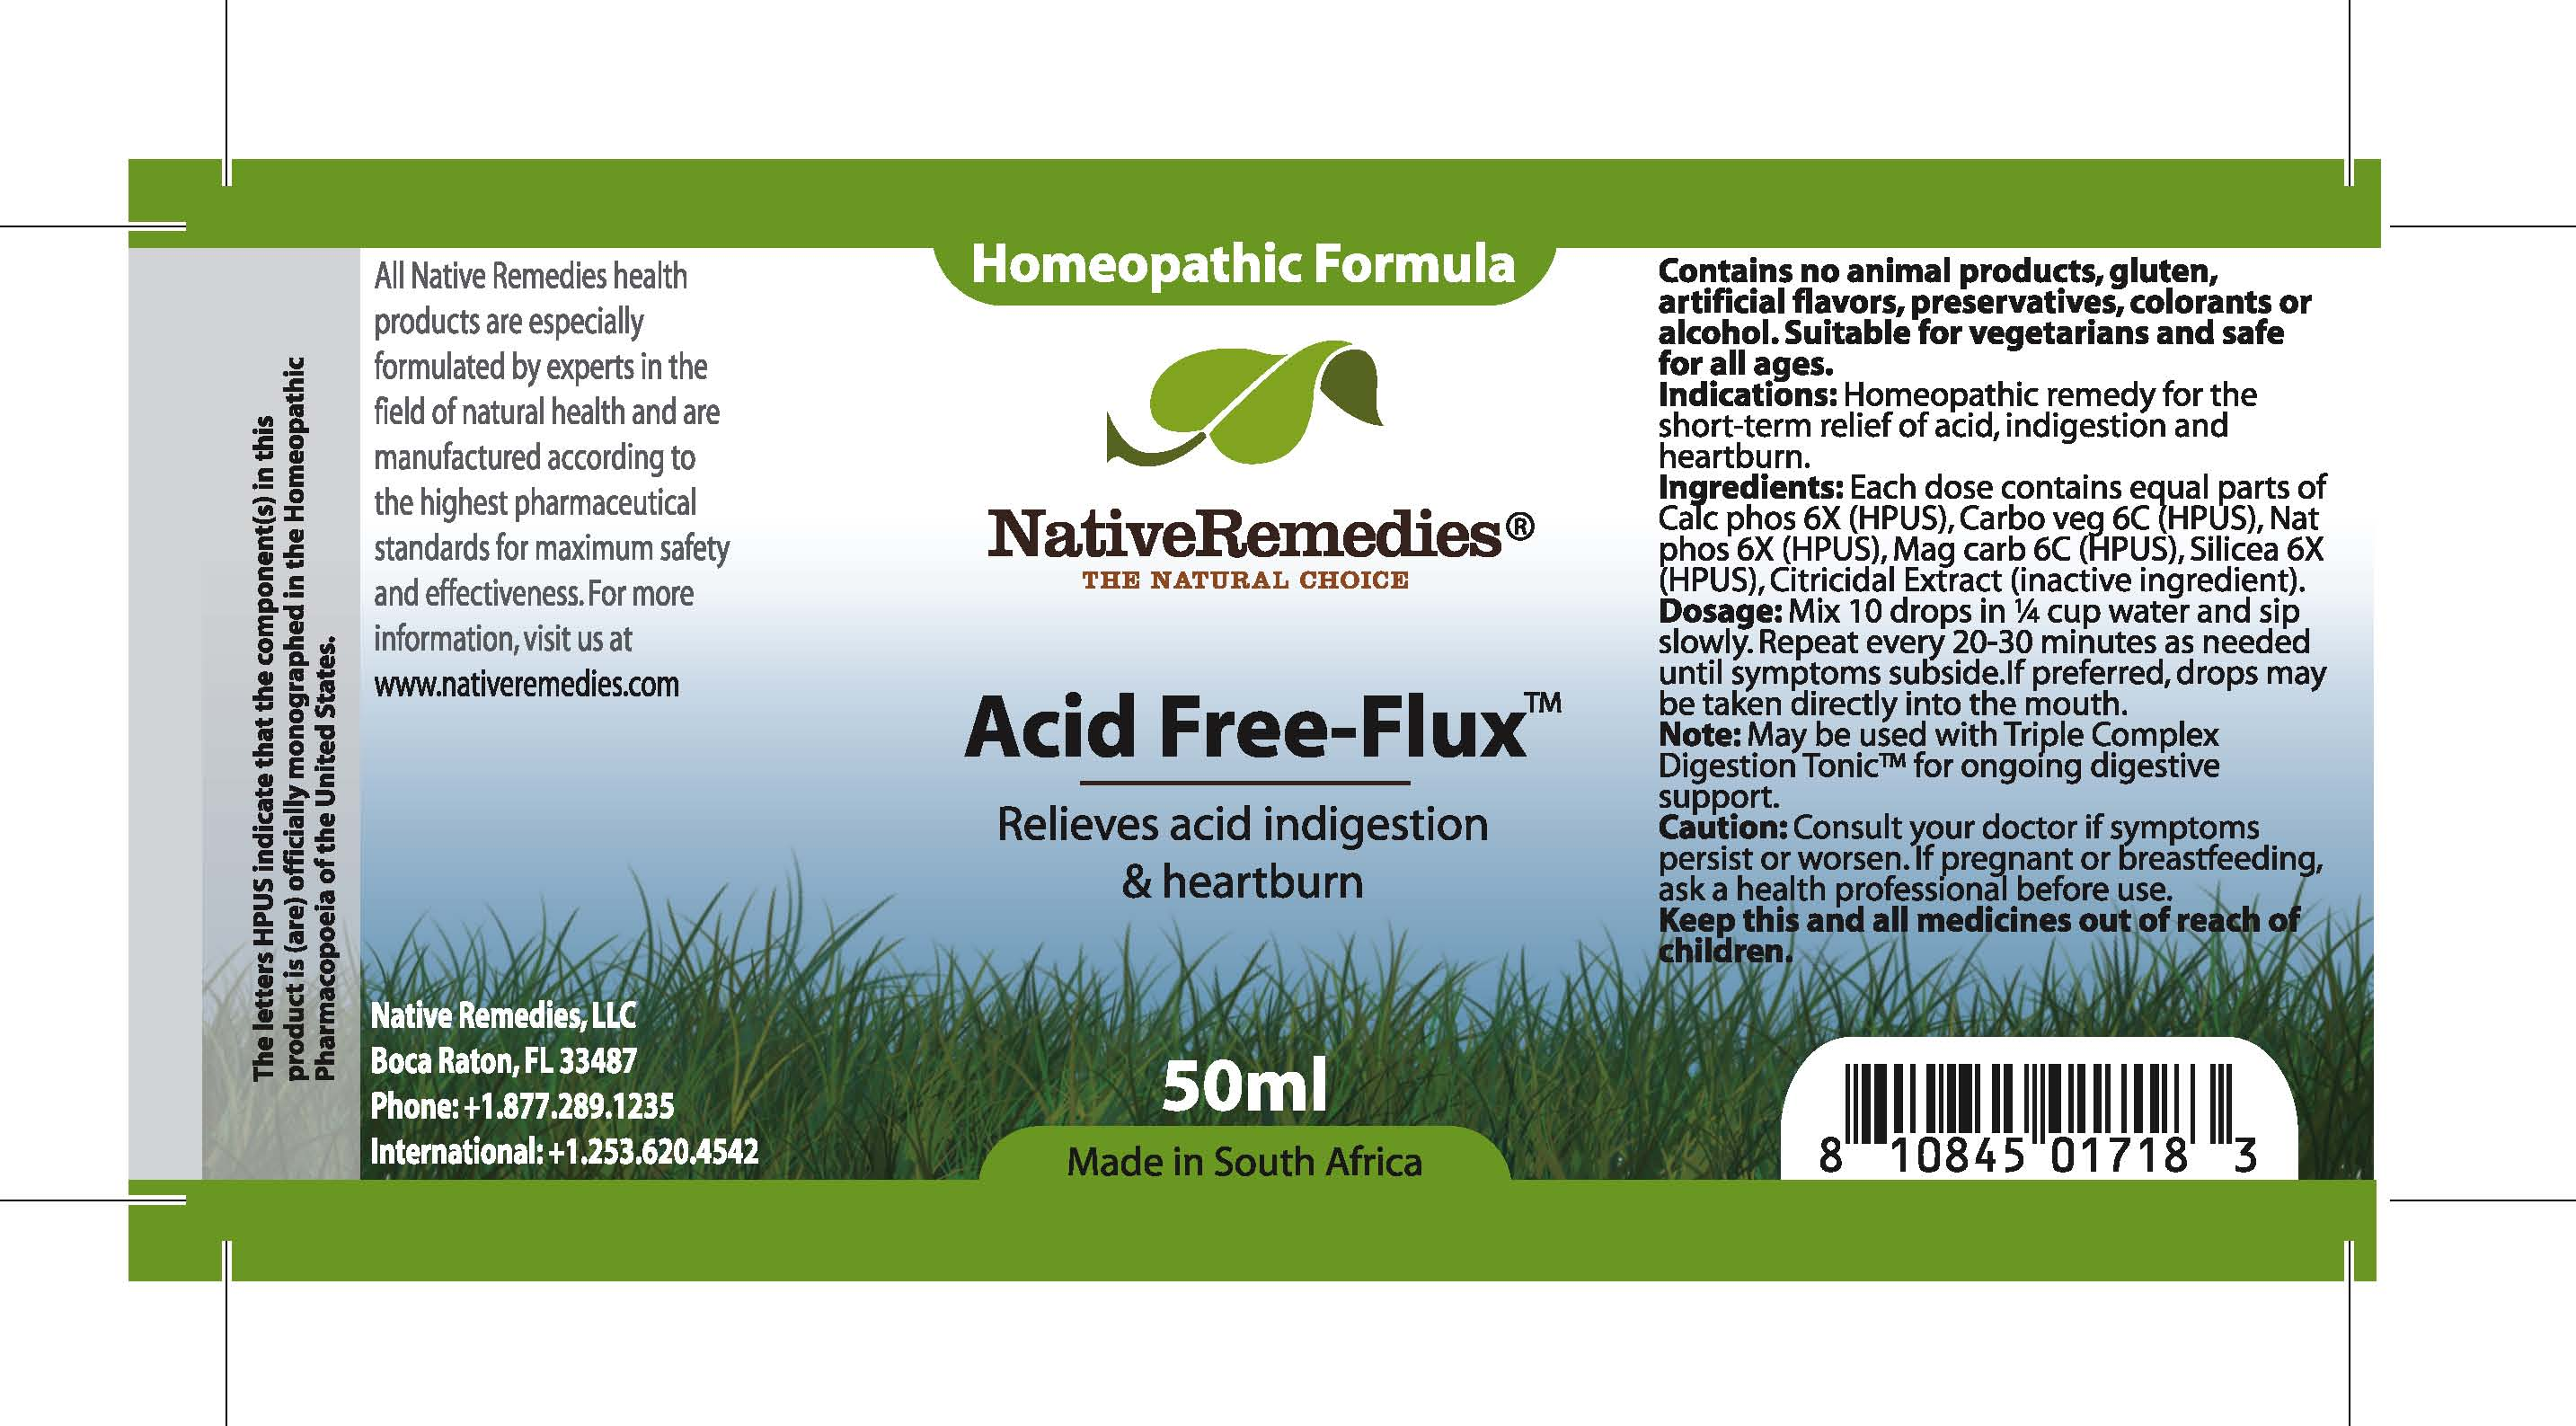 Acid Free-flux (Calc Phos, Carbo Veg, Nat Phos , Mag Carb, Silicea) Tincture [Feelgood Health]